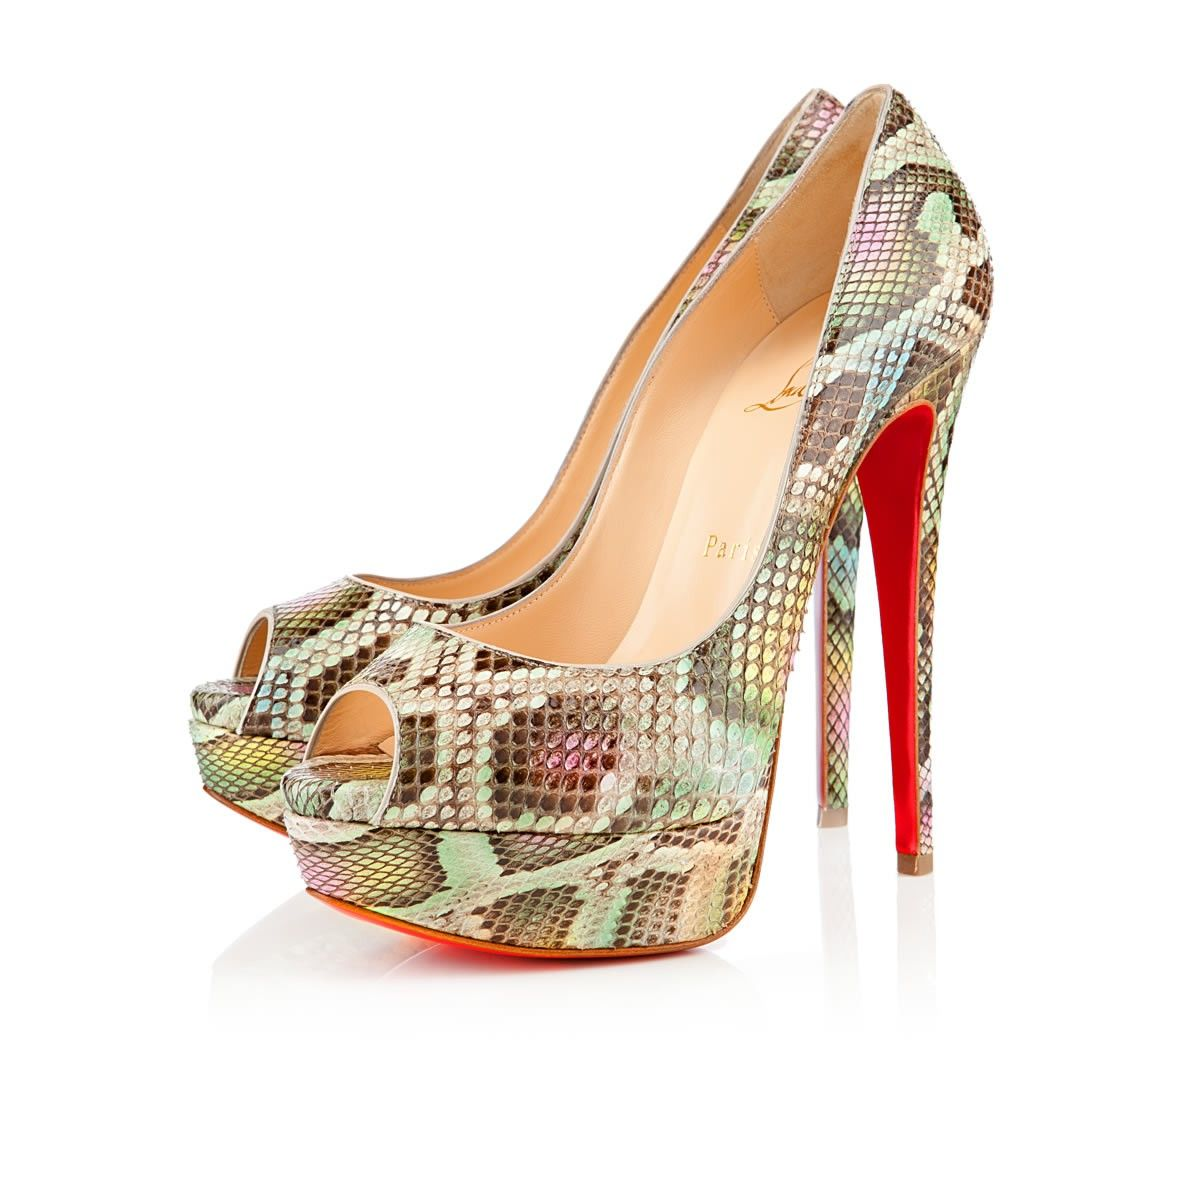 The Most Expensive Christian Louboutin Shoes of 2013 - TheRichest